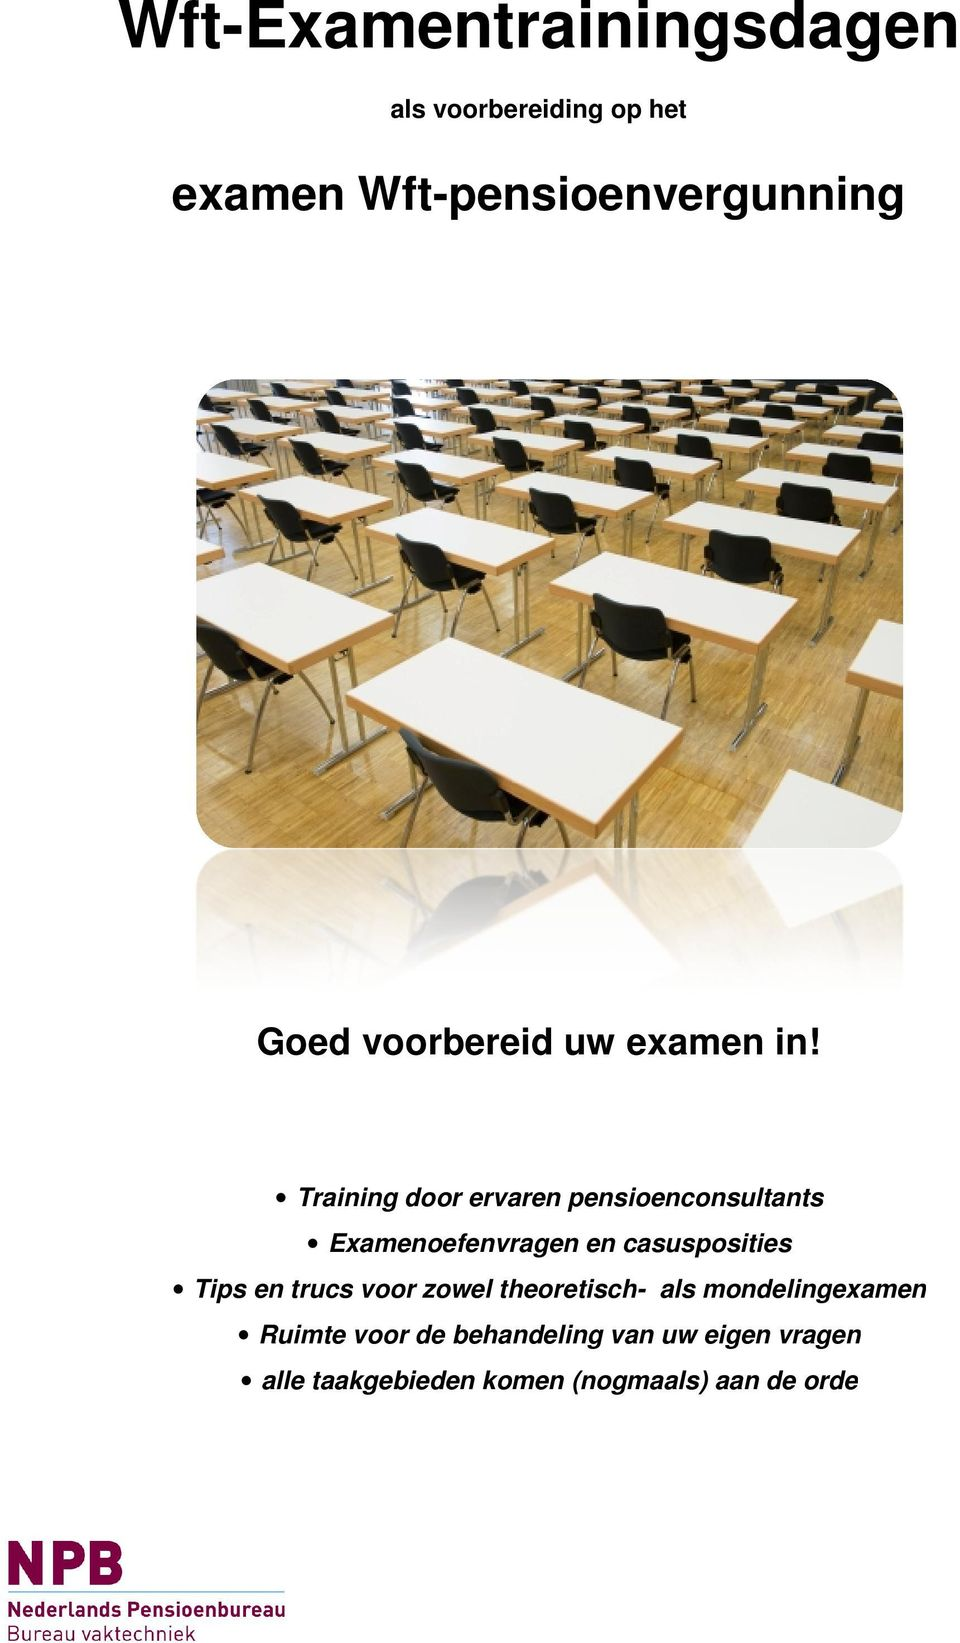 Training door do ervaren pensioenconsultants Examenoefenvragen Examen en casusposities Tips en trucs